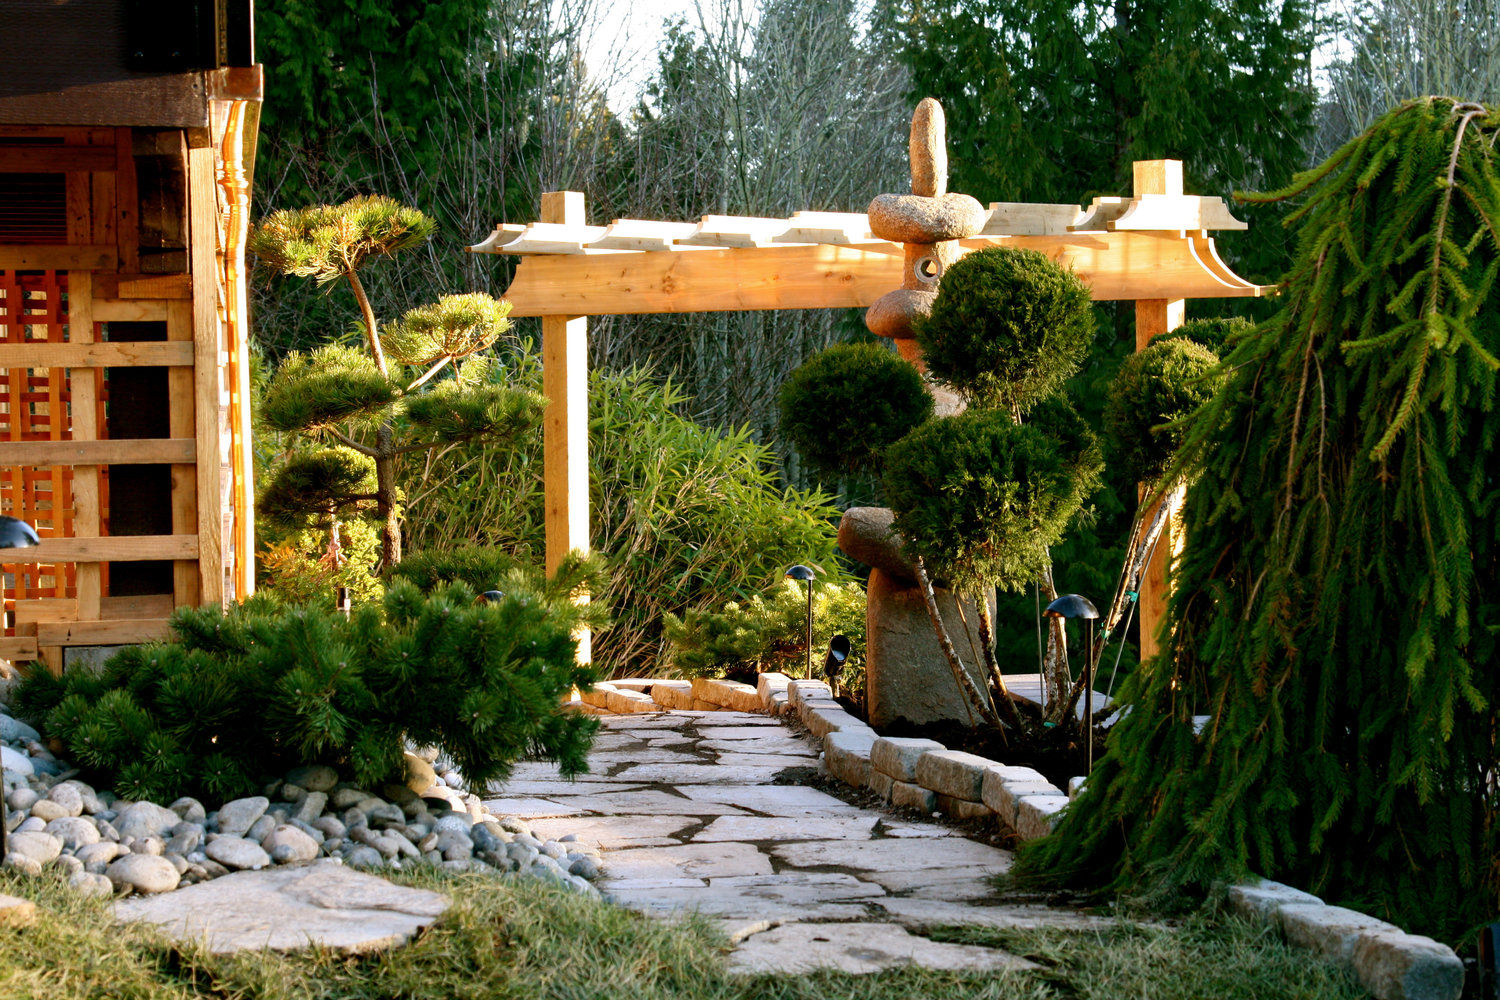 TBO's Green Landscaping Systems